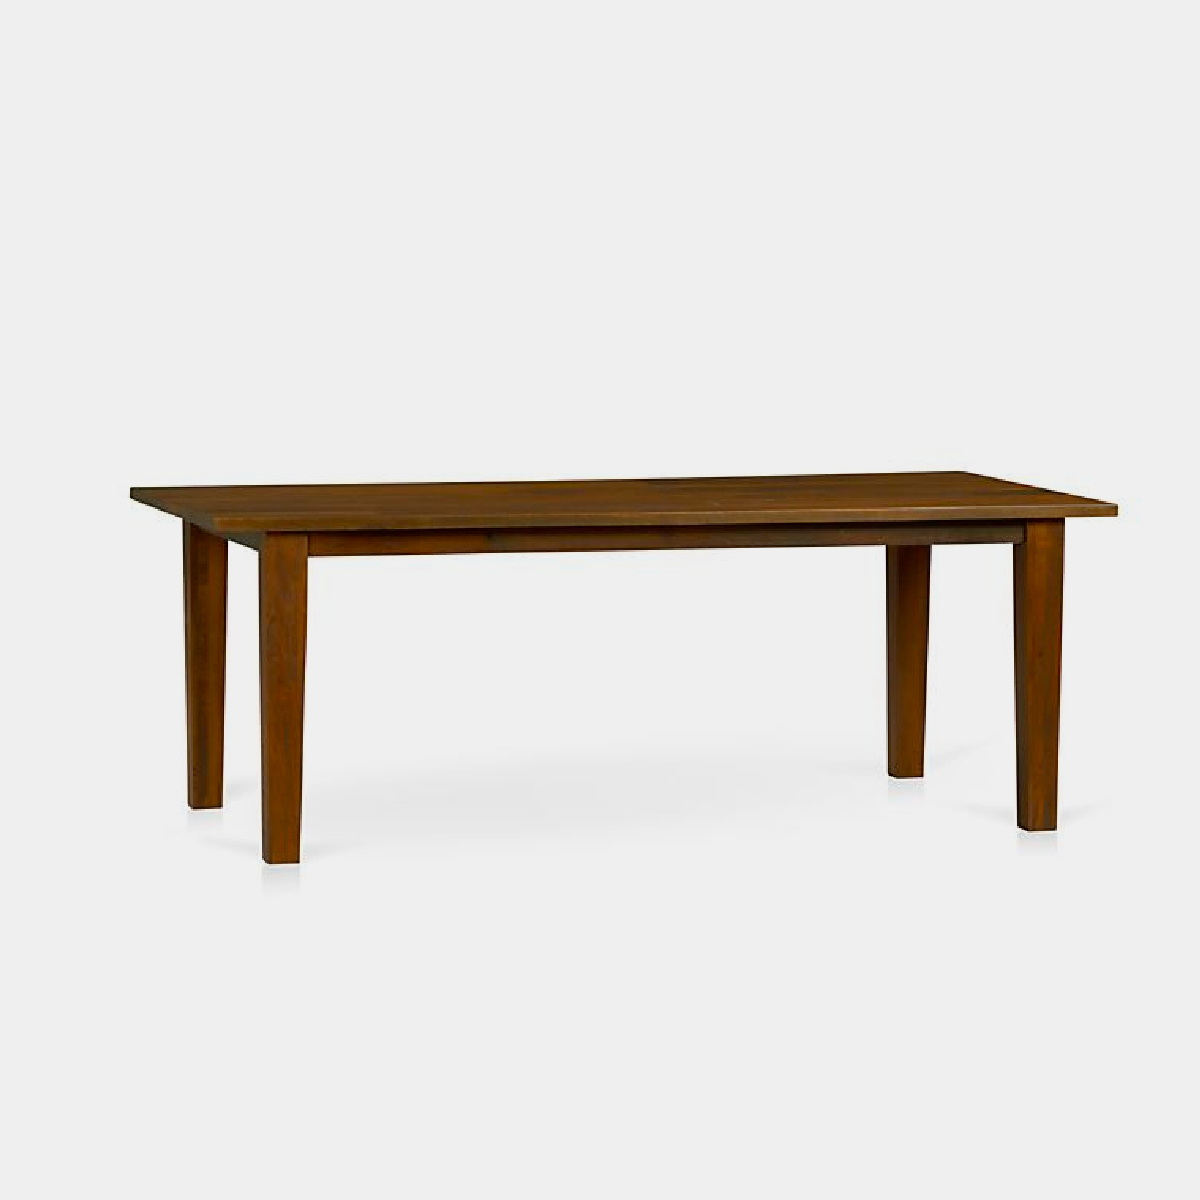 Add To Cart: Dining Tables | All Sorts Of Throughout Current Hearst Oak Wood Dining Tables (Image 7 of 25)